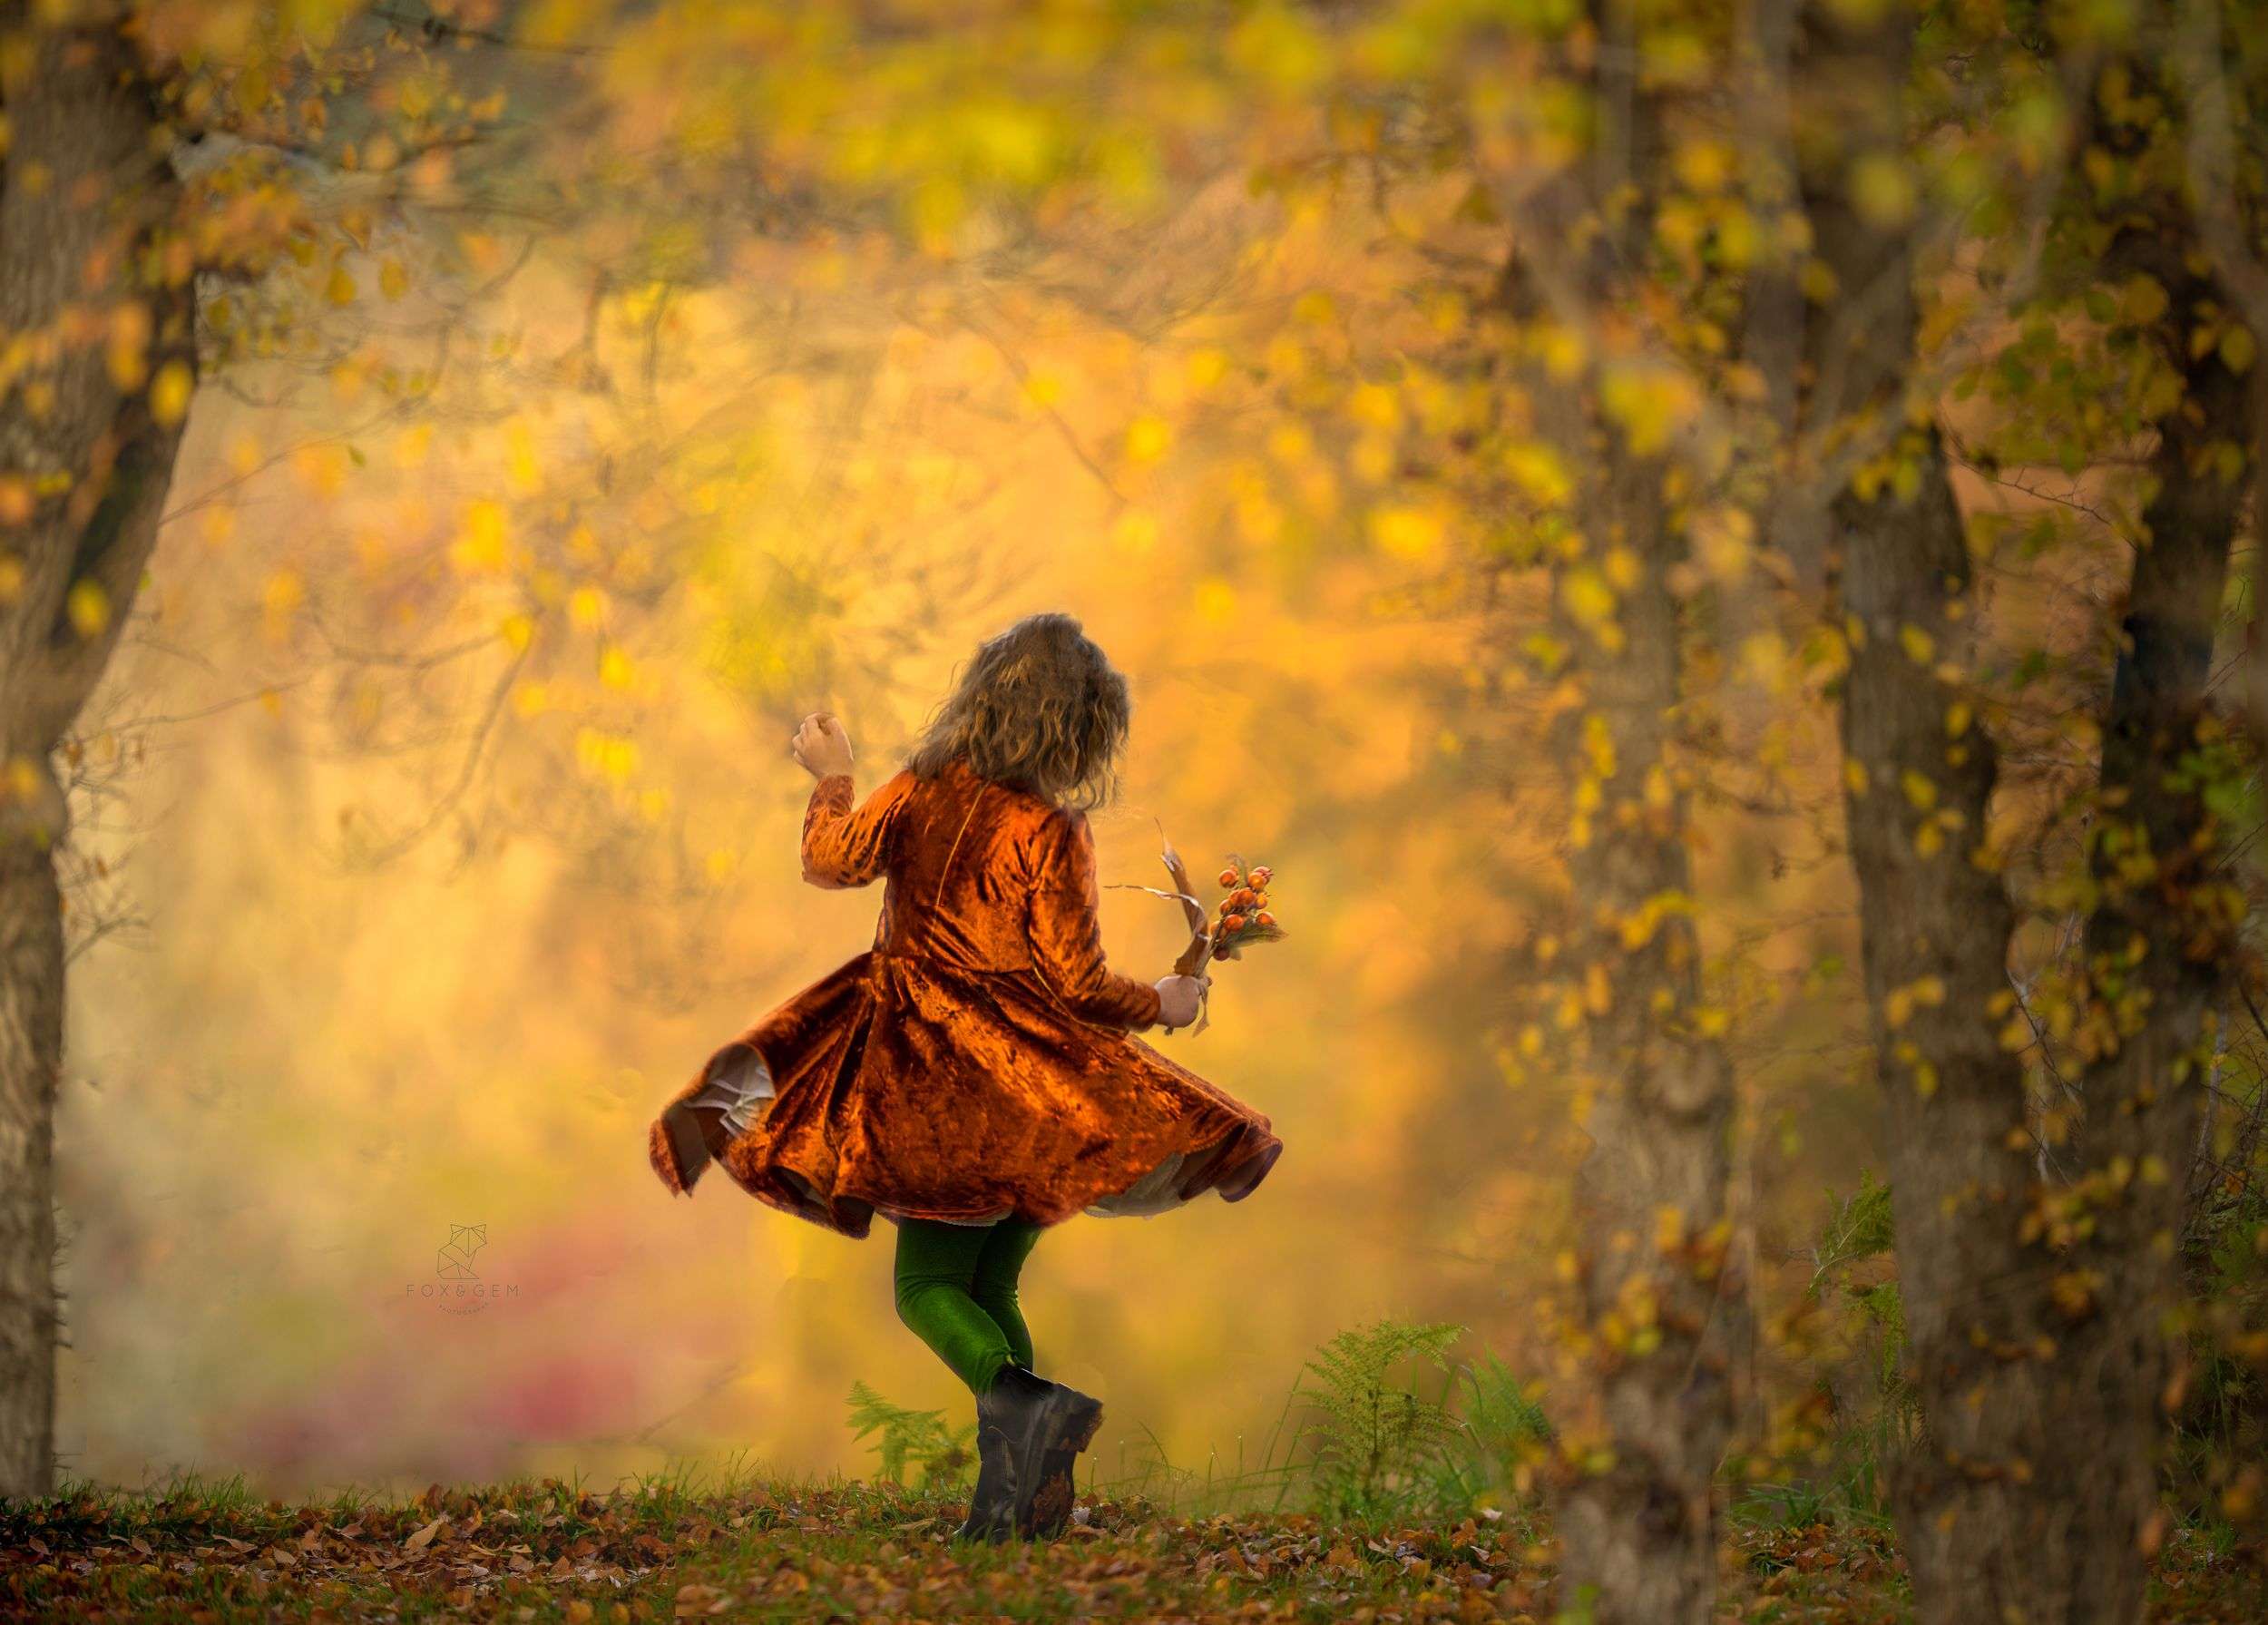 Small child dances in vintage style burnt orange dress in amazing outdoor painterly portrait in Victoria BC